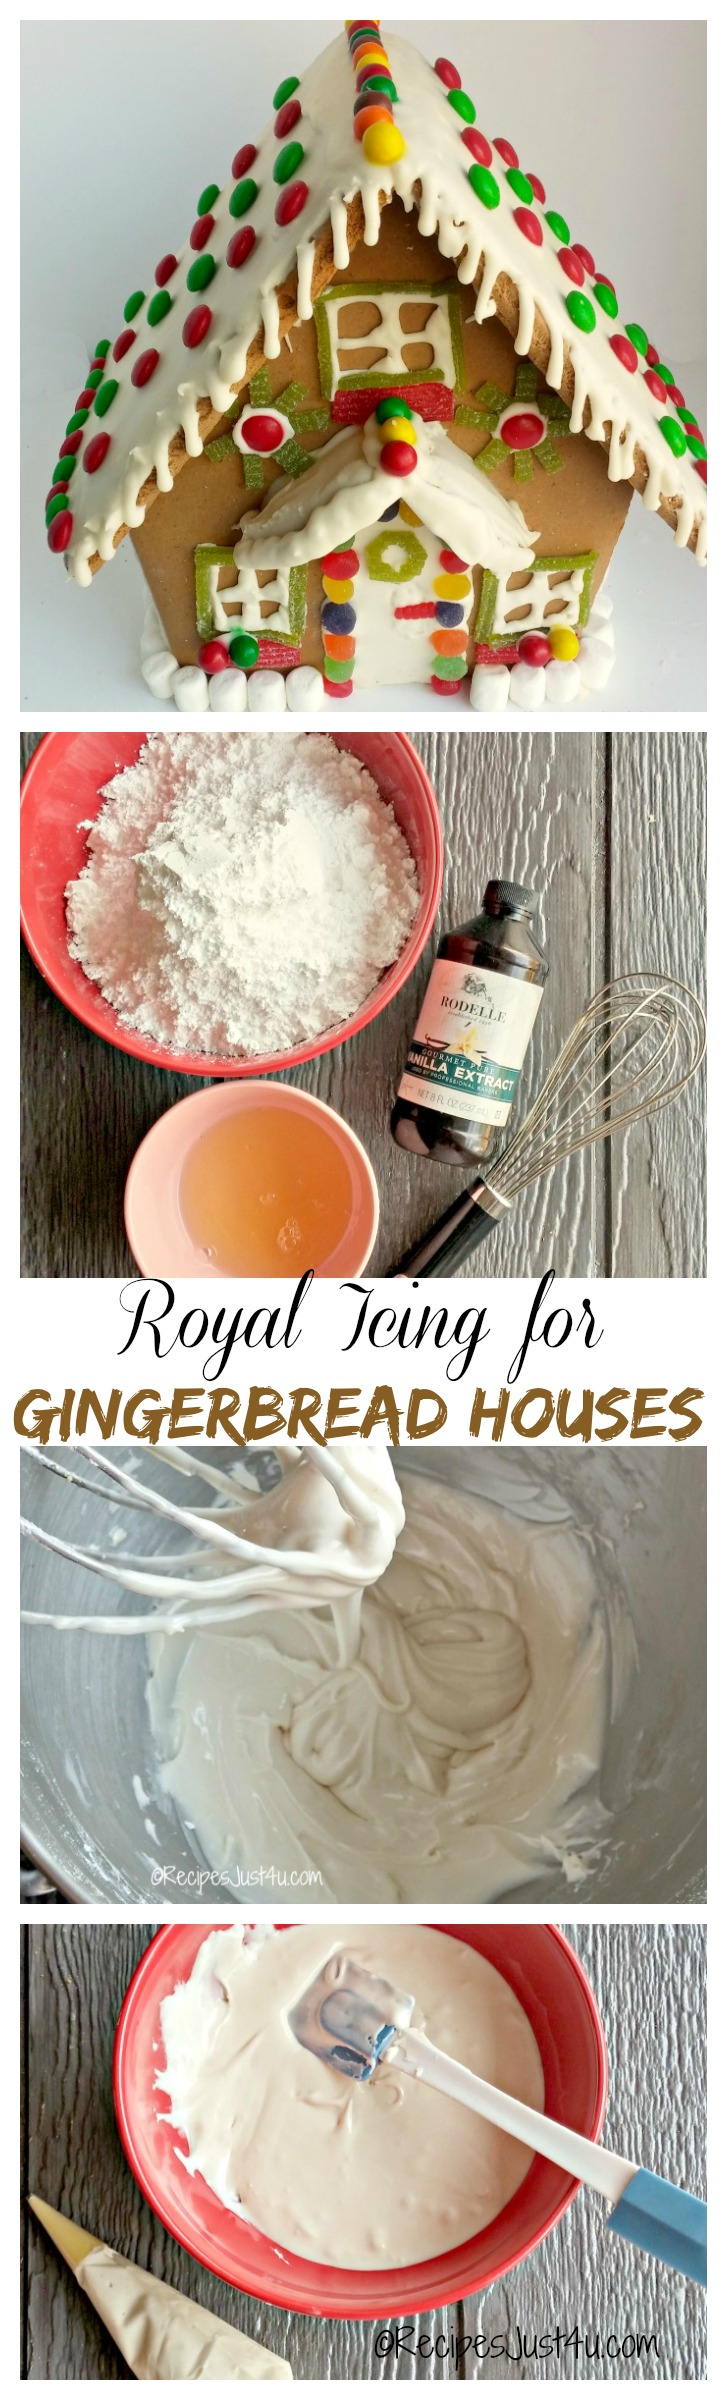 Royal Icing For Gingerbread Houses Recipes Just 4u